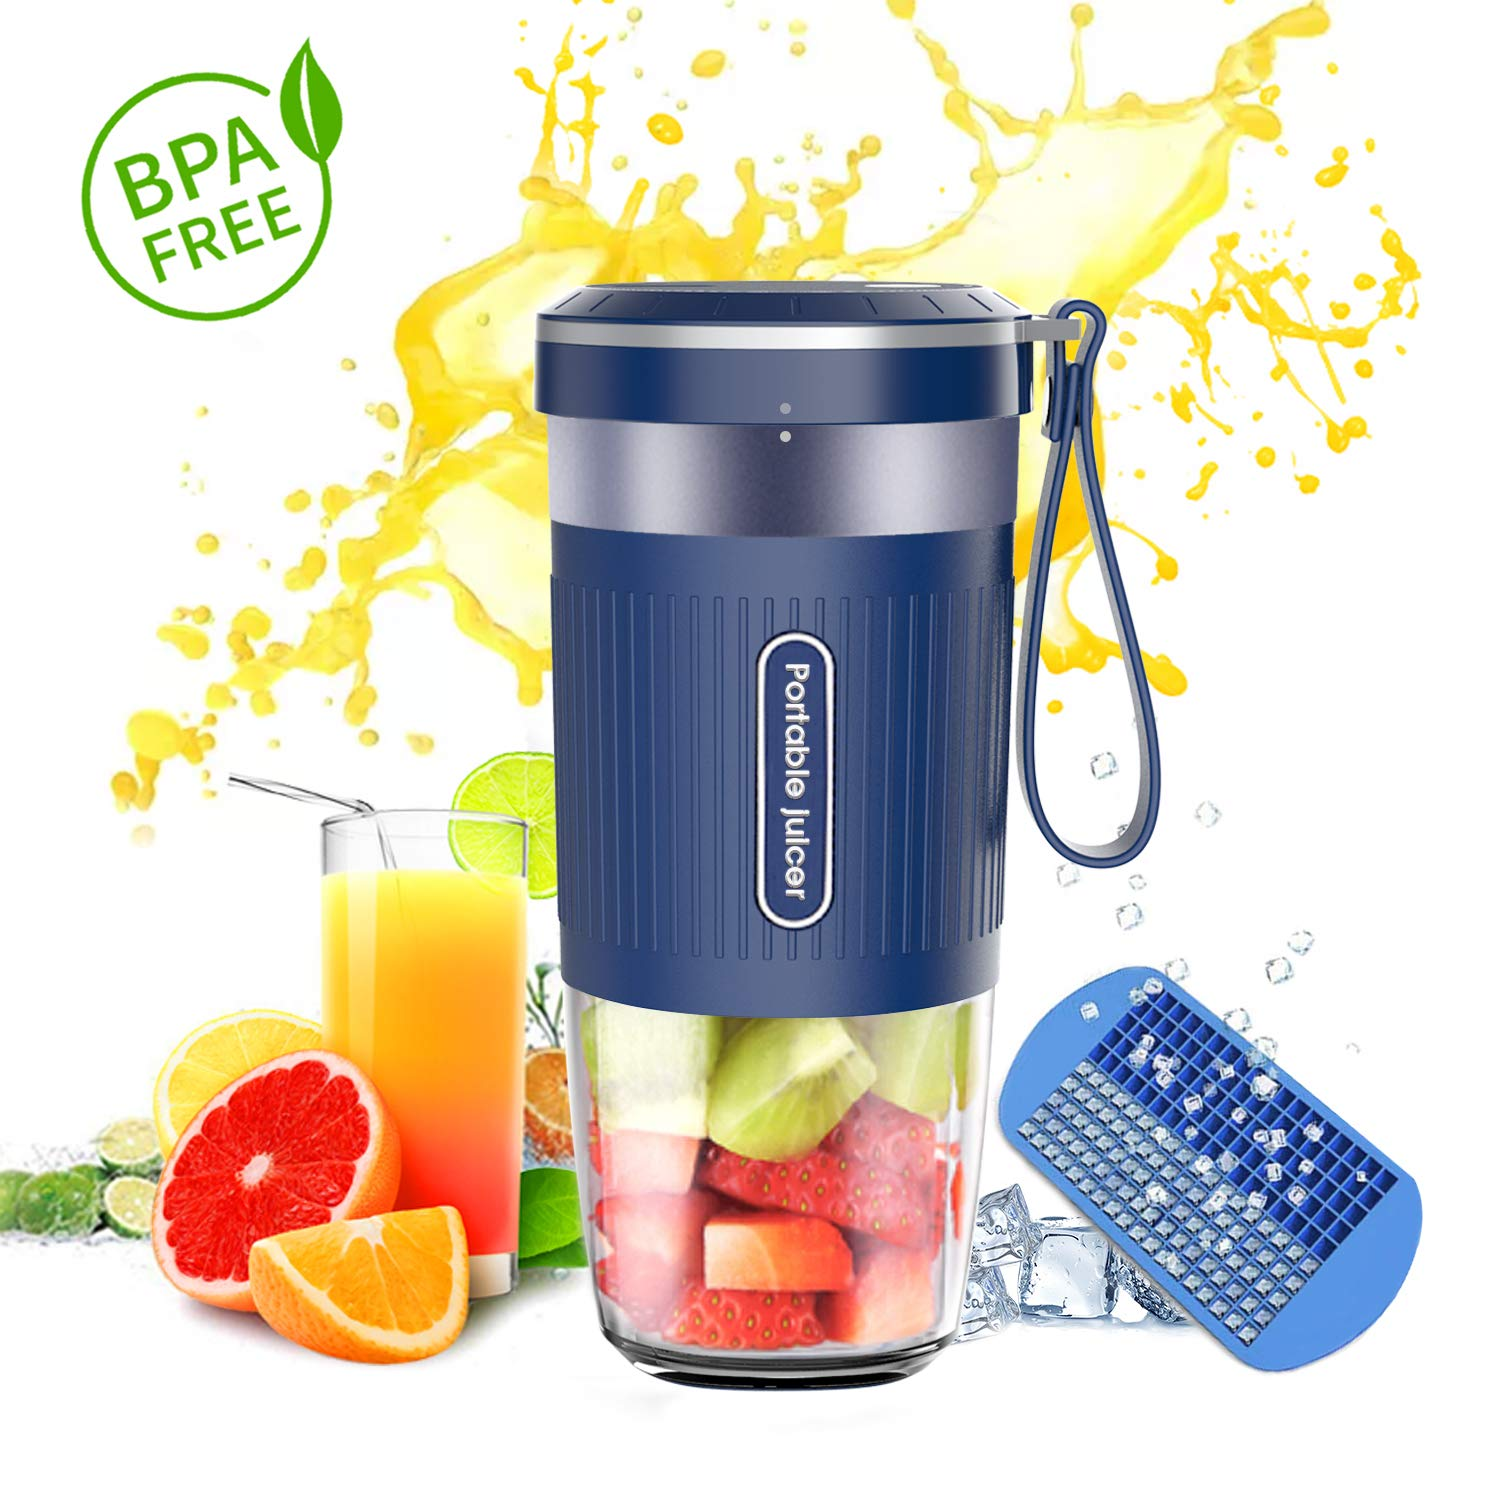 Portable Blender,DOUHE Cordless Mini Personal Blender Small Smoothie Blender USB Fruit Juicer Mixer -Home Outdoor Travel Office - USB Rechargeable,IP68 Waterproof, BPA Free,10oz